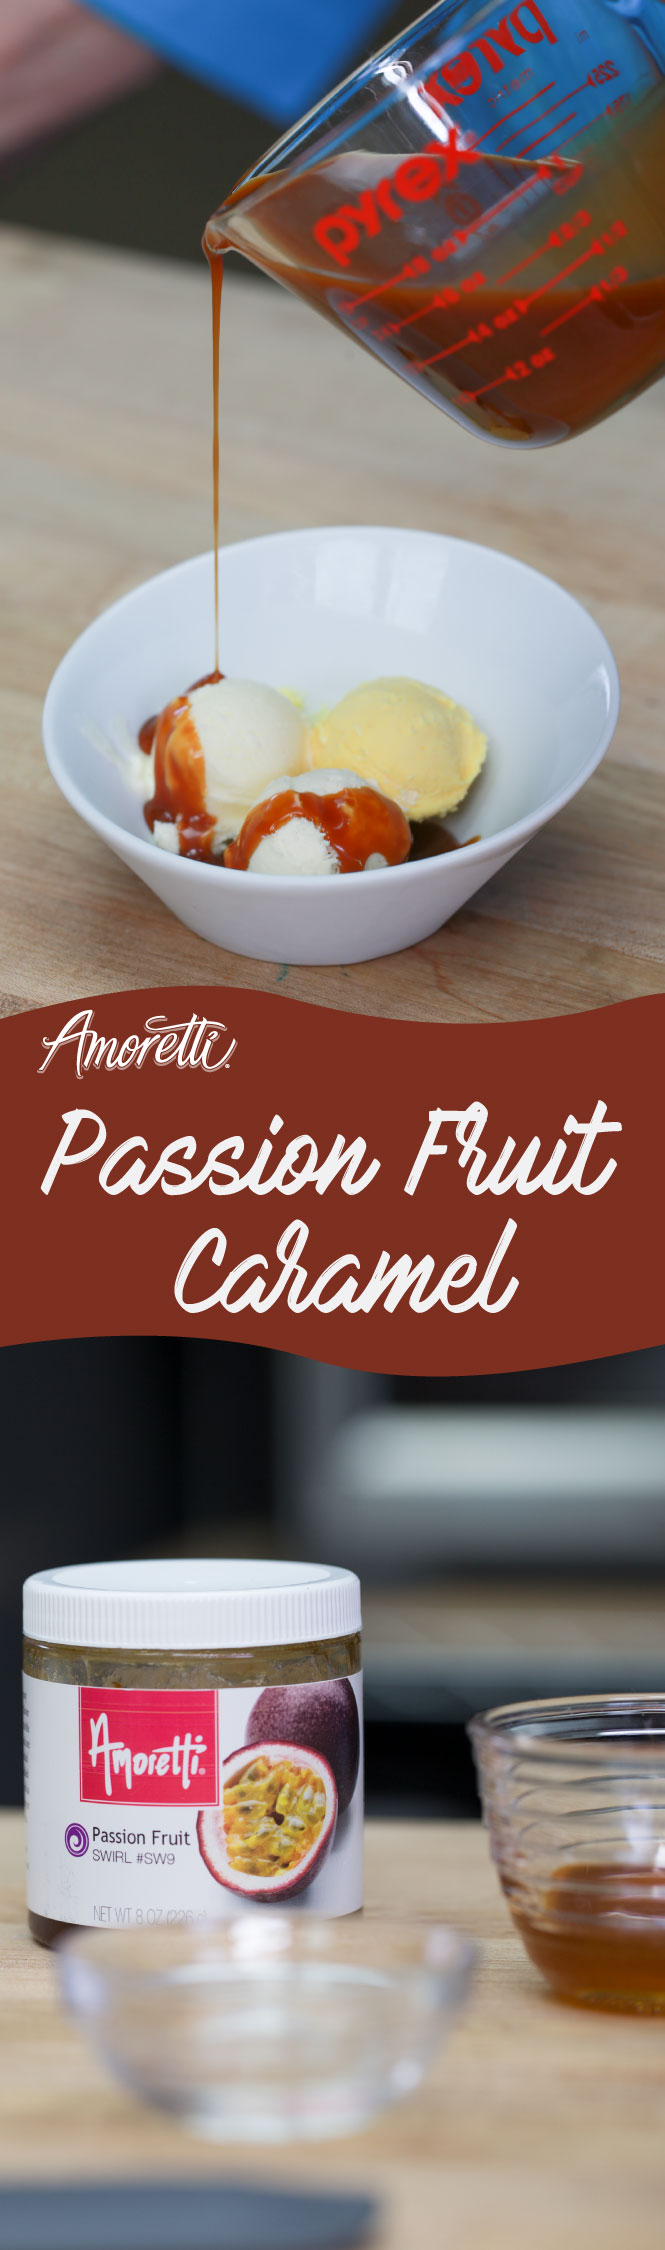 Caramel sauce with a delicious passion fruit twist!